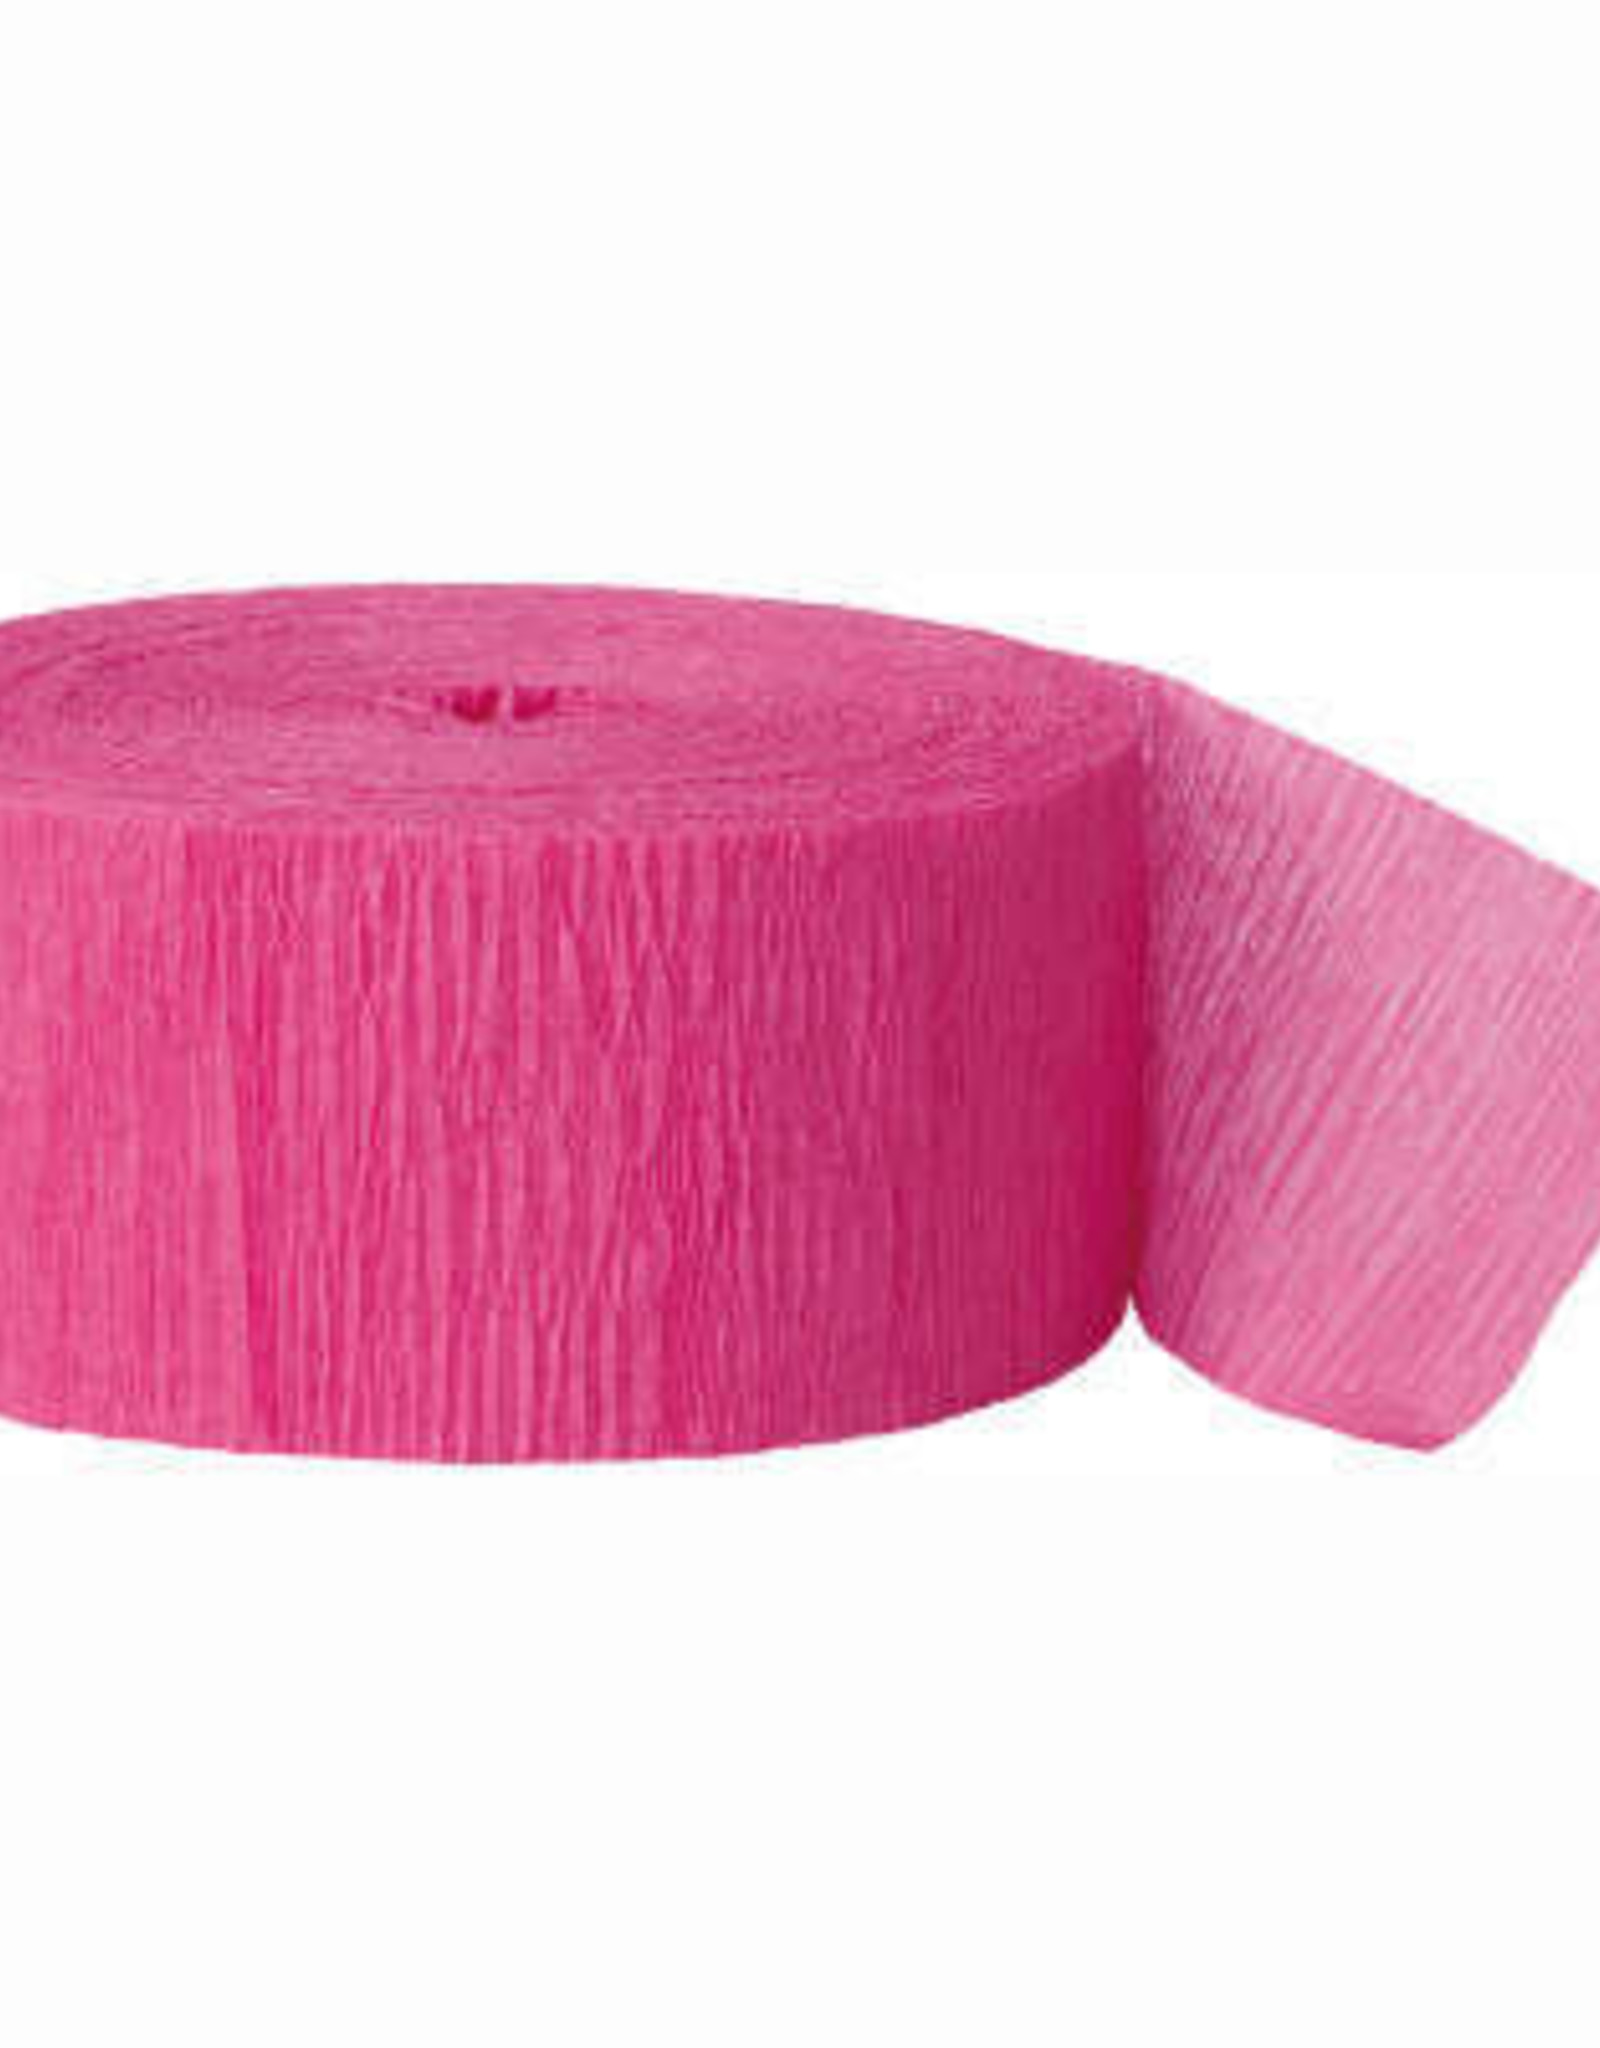 Hot Pink Streamers 81FT